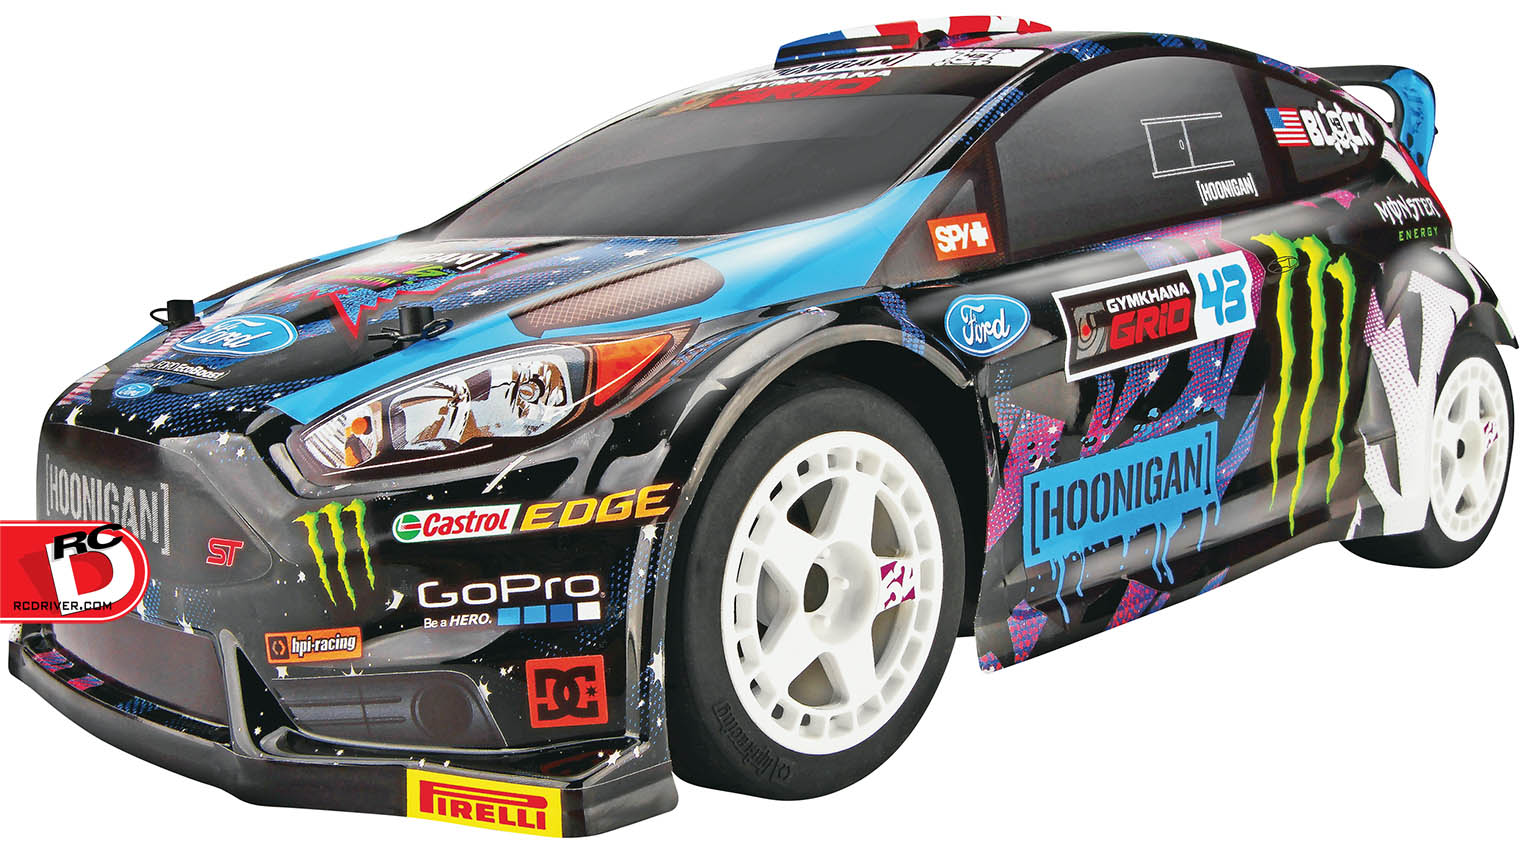 1/18 Ken Block 2015 Ford Fiesta Micro RS4 4WD RTR from HPI